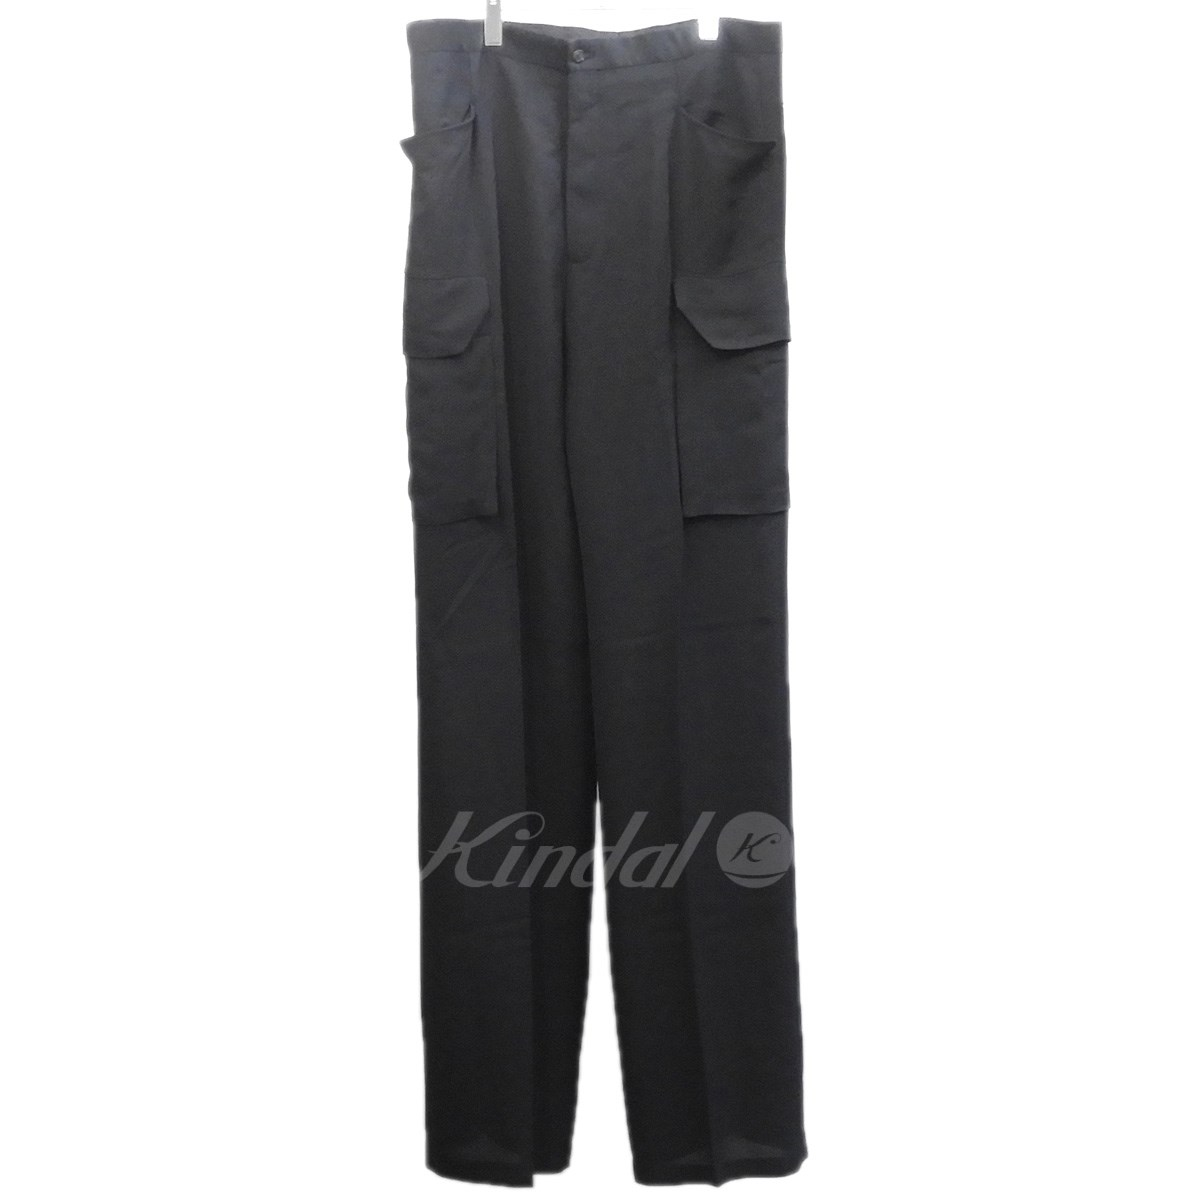 【中古】Rick Owens 2017SS 「Tailored Flat Cargo Trousers」ワイドカーゴパンツ 【送料無料】 【130447】 【KIND1550】